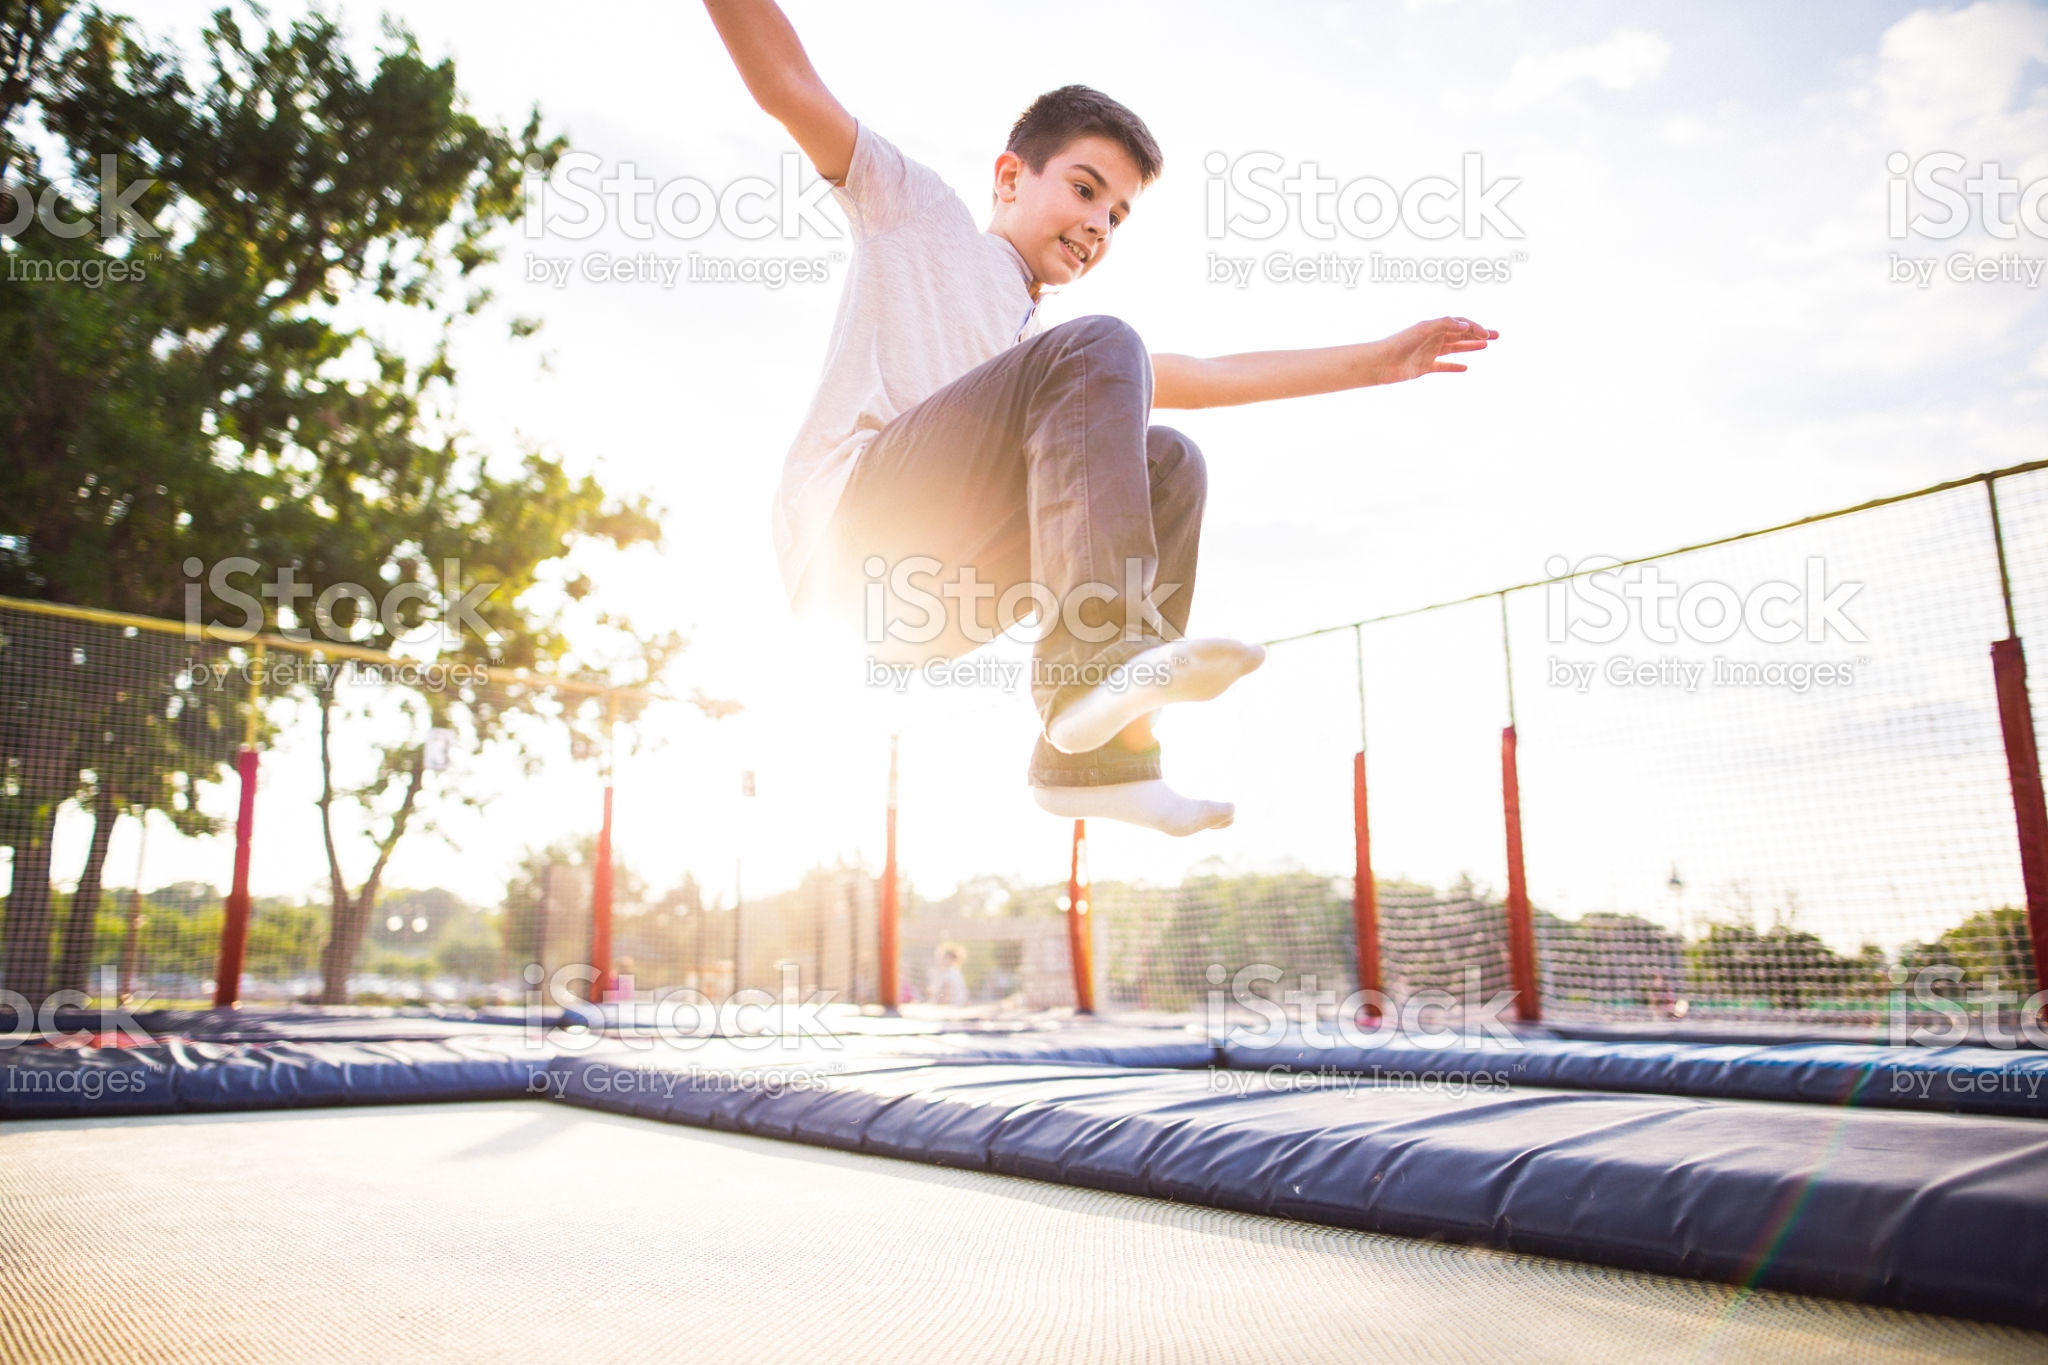 Photo of  boy jumping open arms on the trampoline in the park